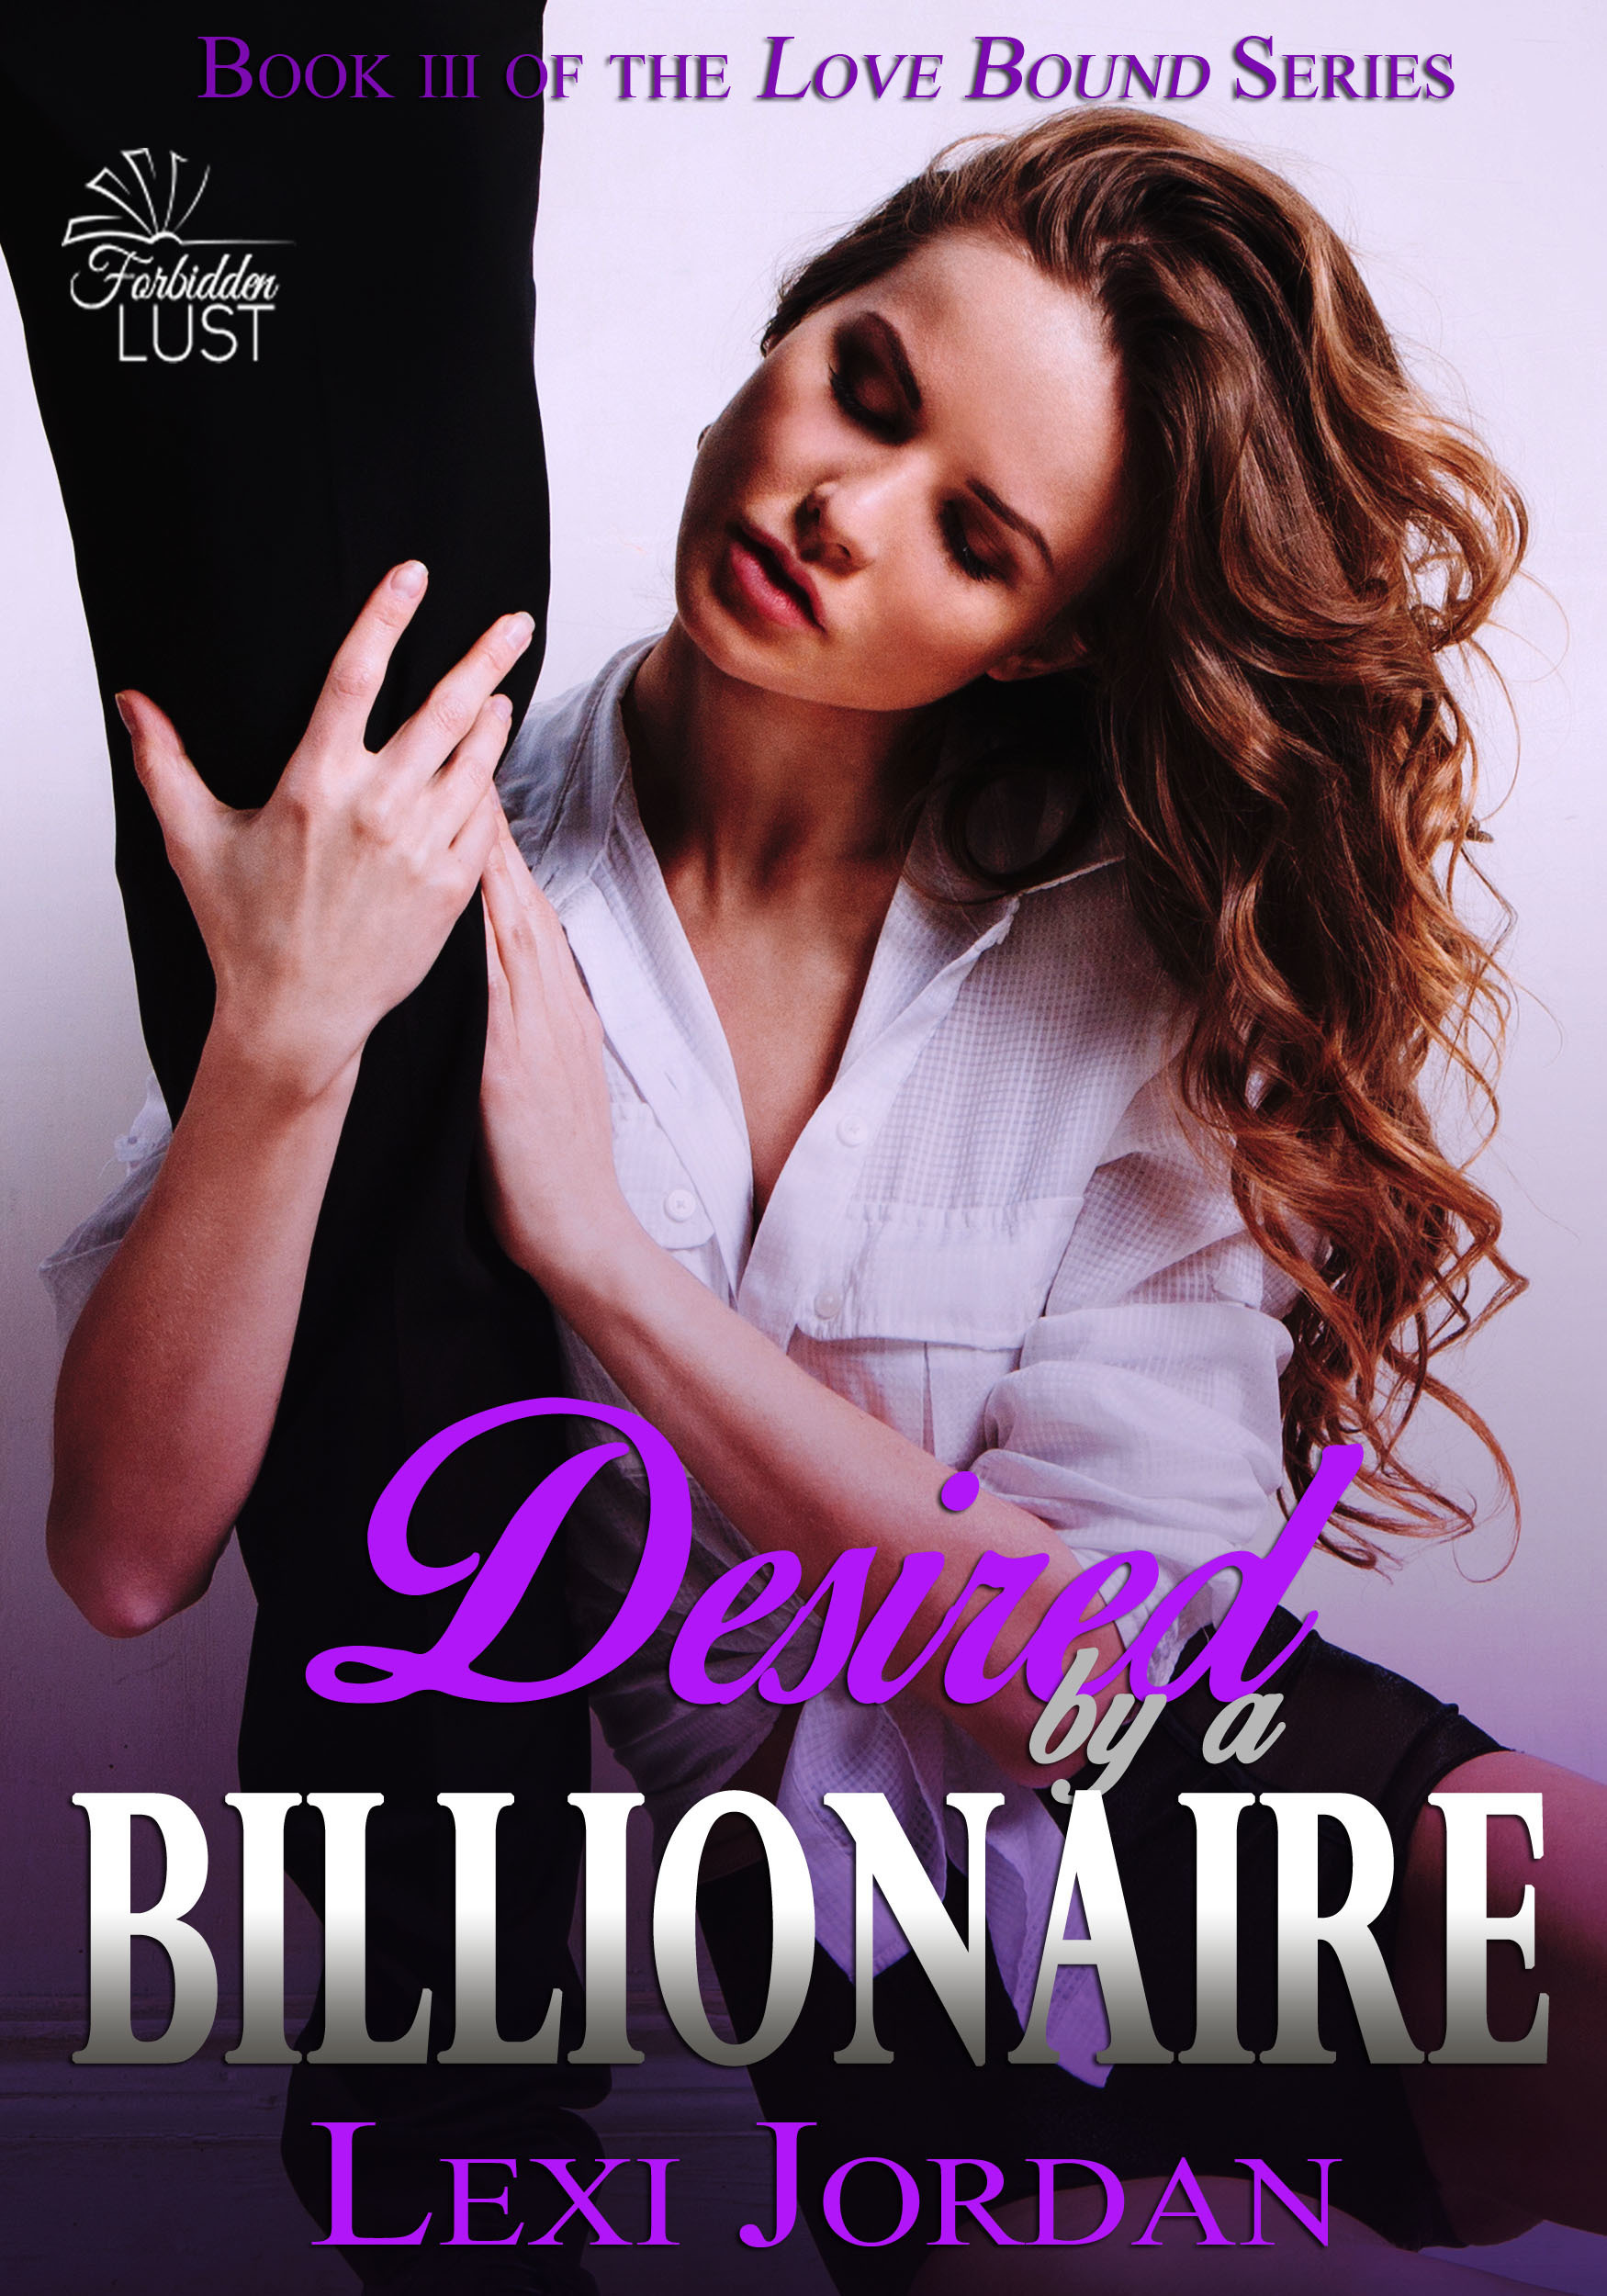 Desired  by  a Billionaire by Lexi Jordan